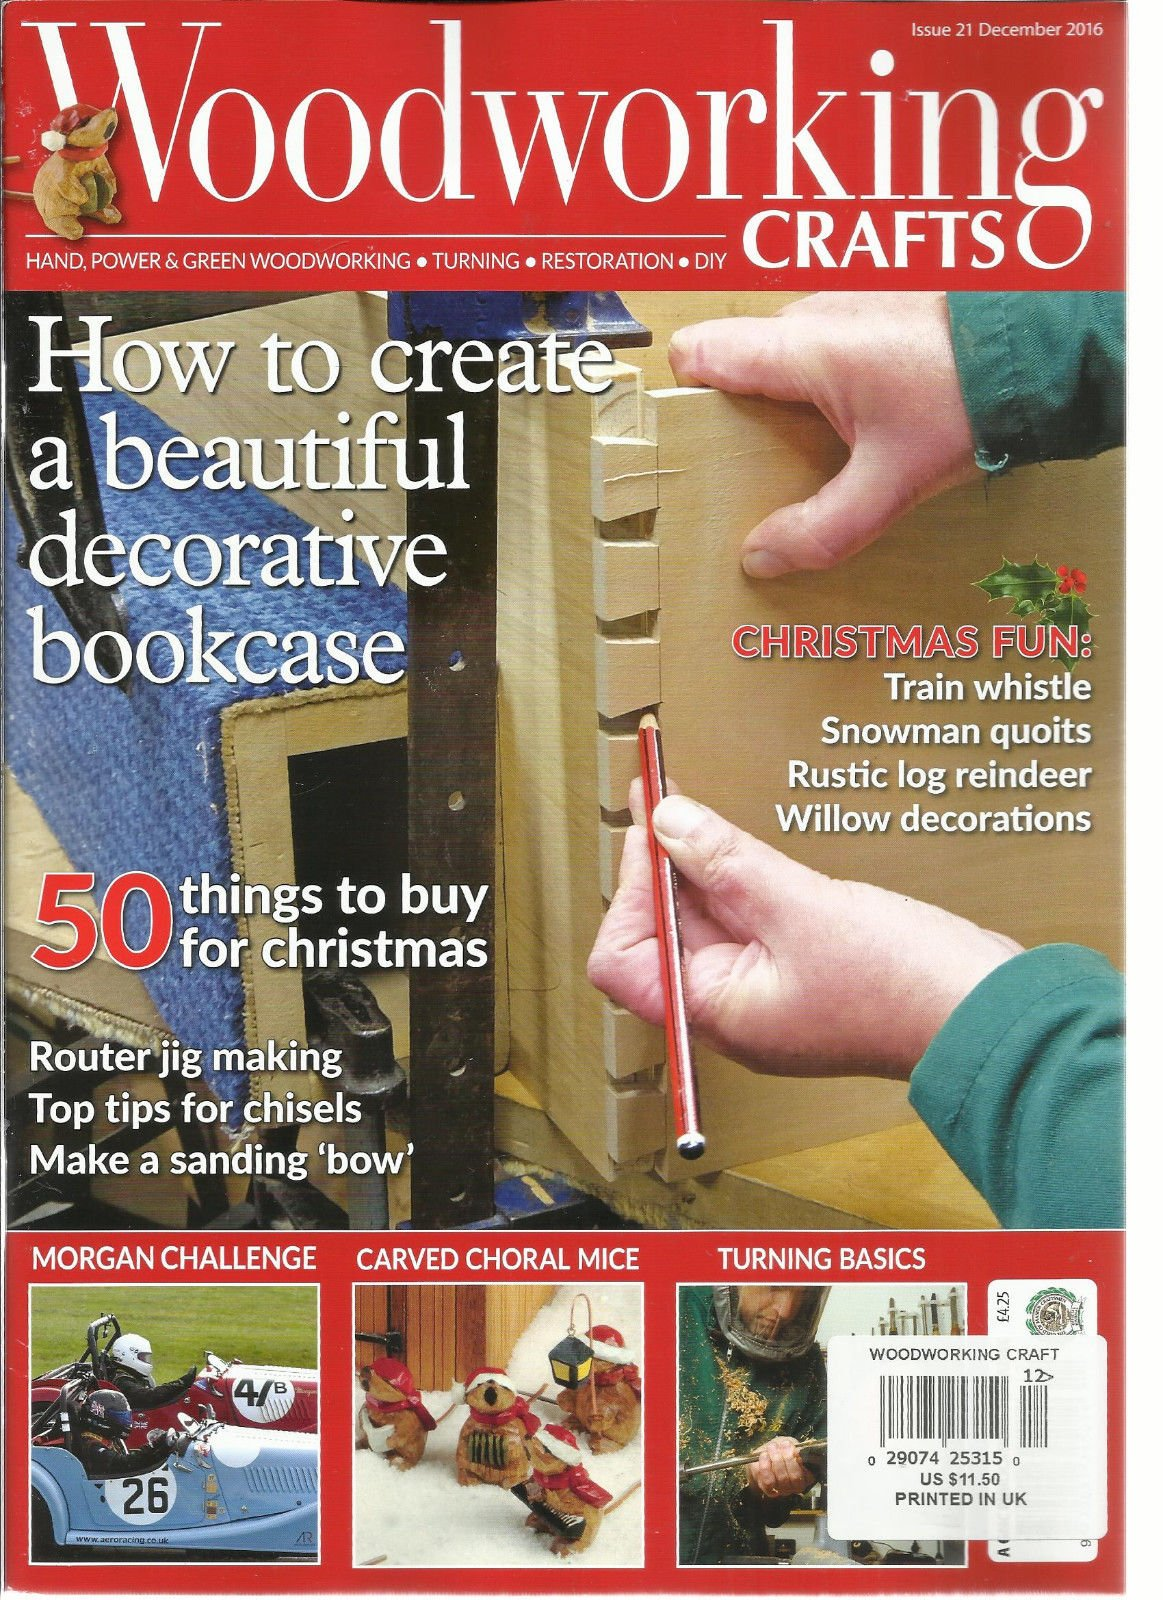 WOOD WORKING CRAFTS MAGAZINE, HAND POWER & GREEN WOODWORKING DECEMBER, 2016